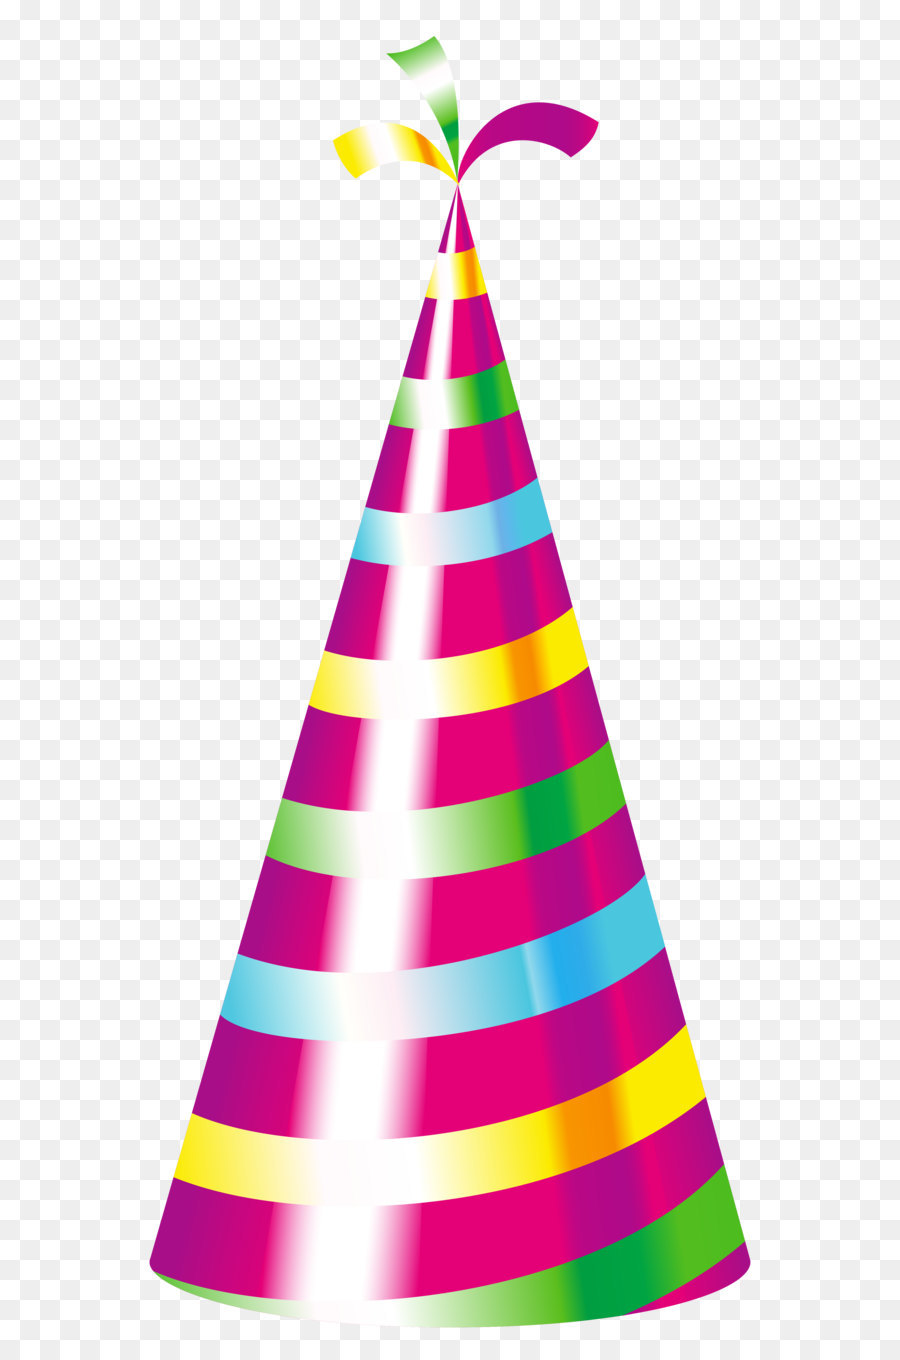 birthday party hat clip art party hat png clipart image png rh kisspng com